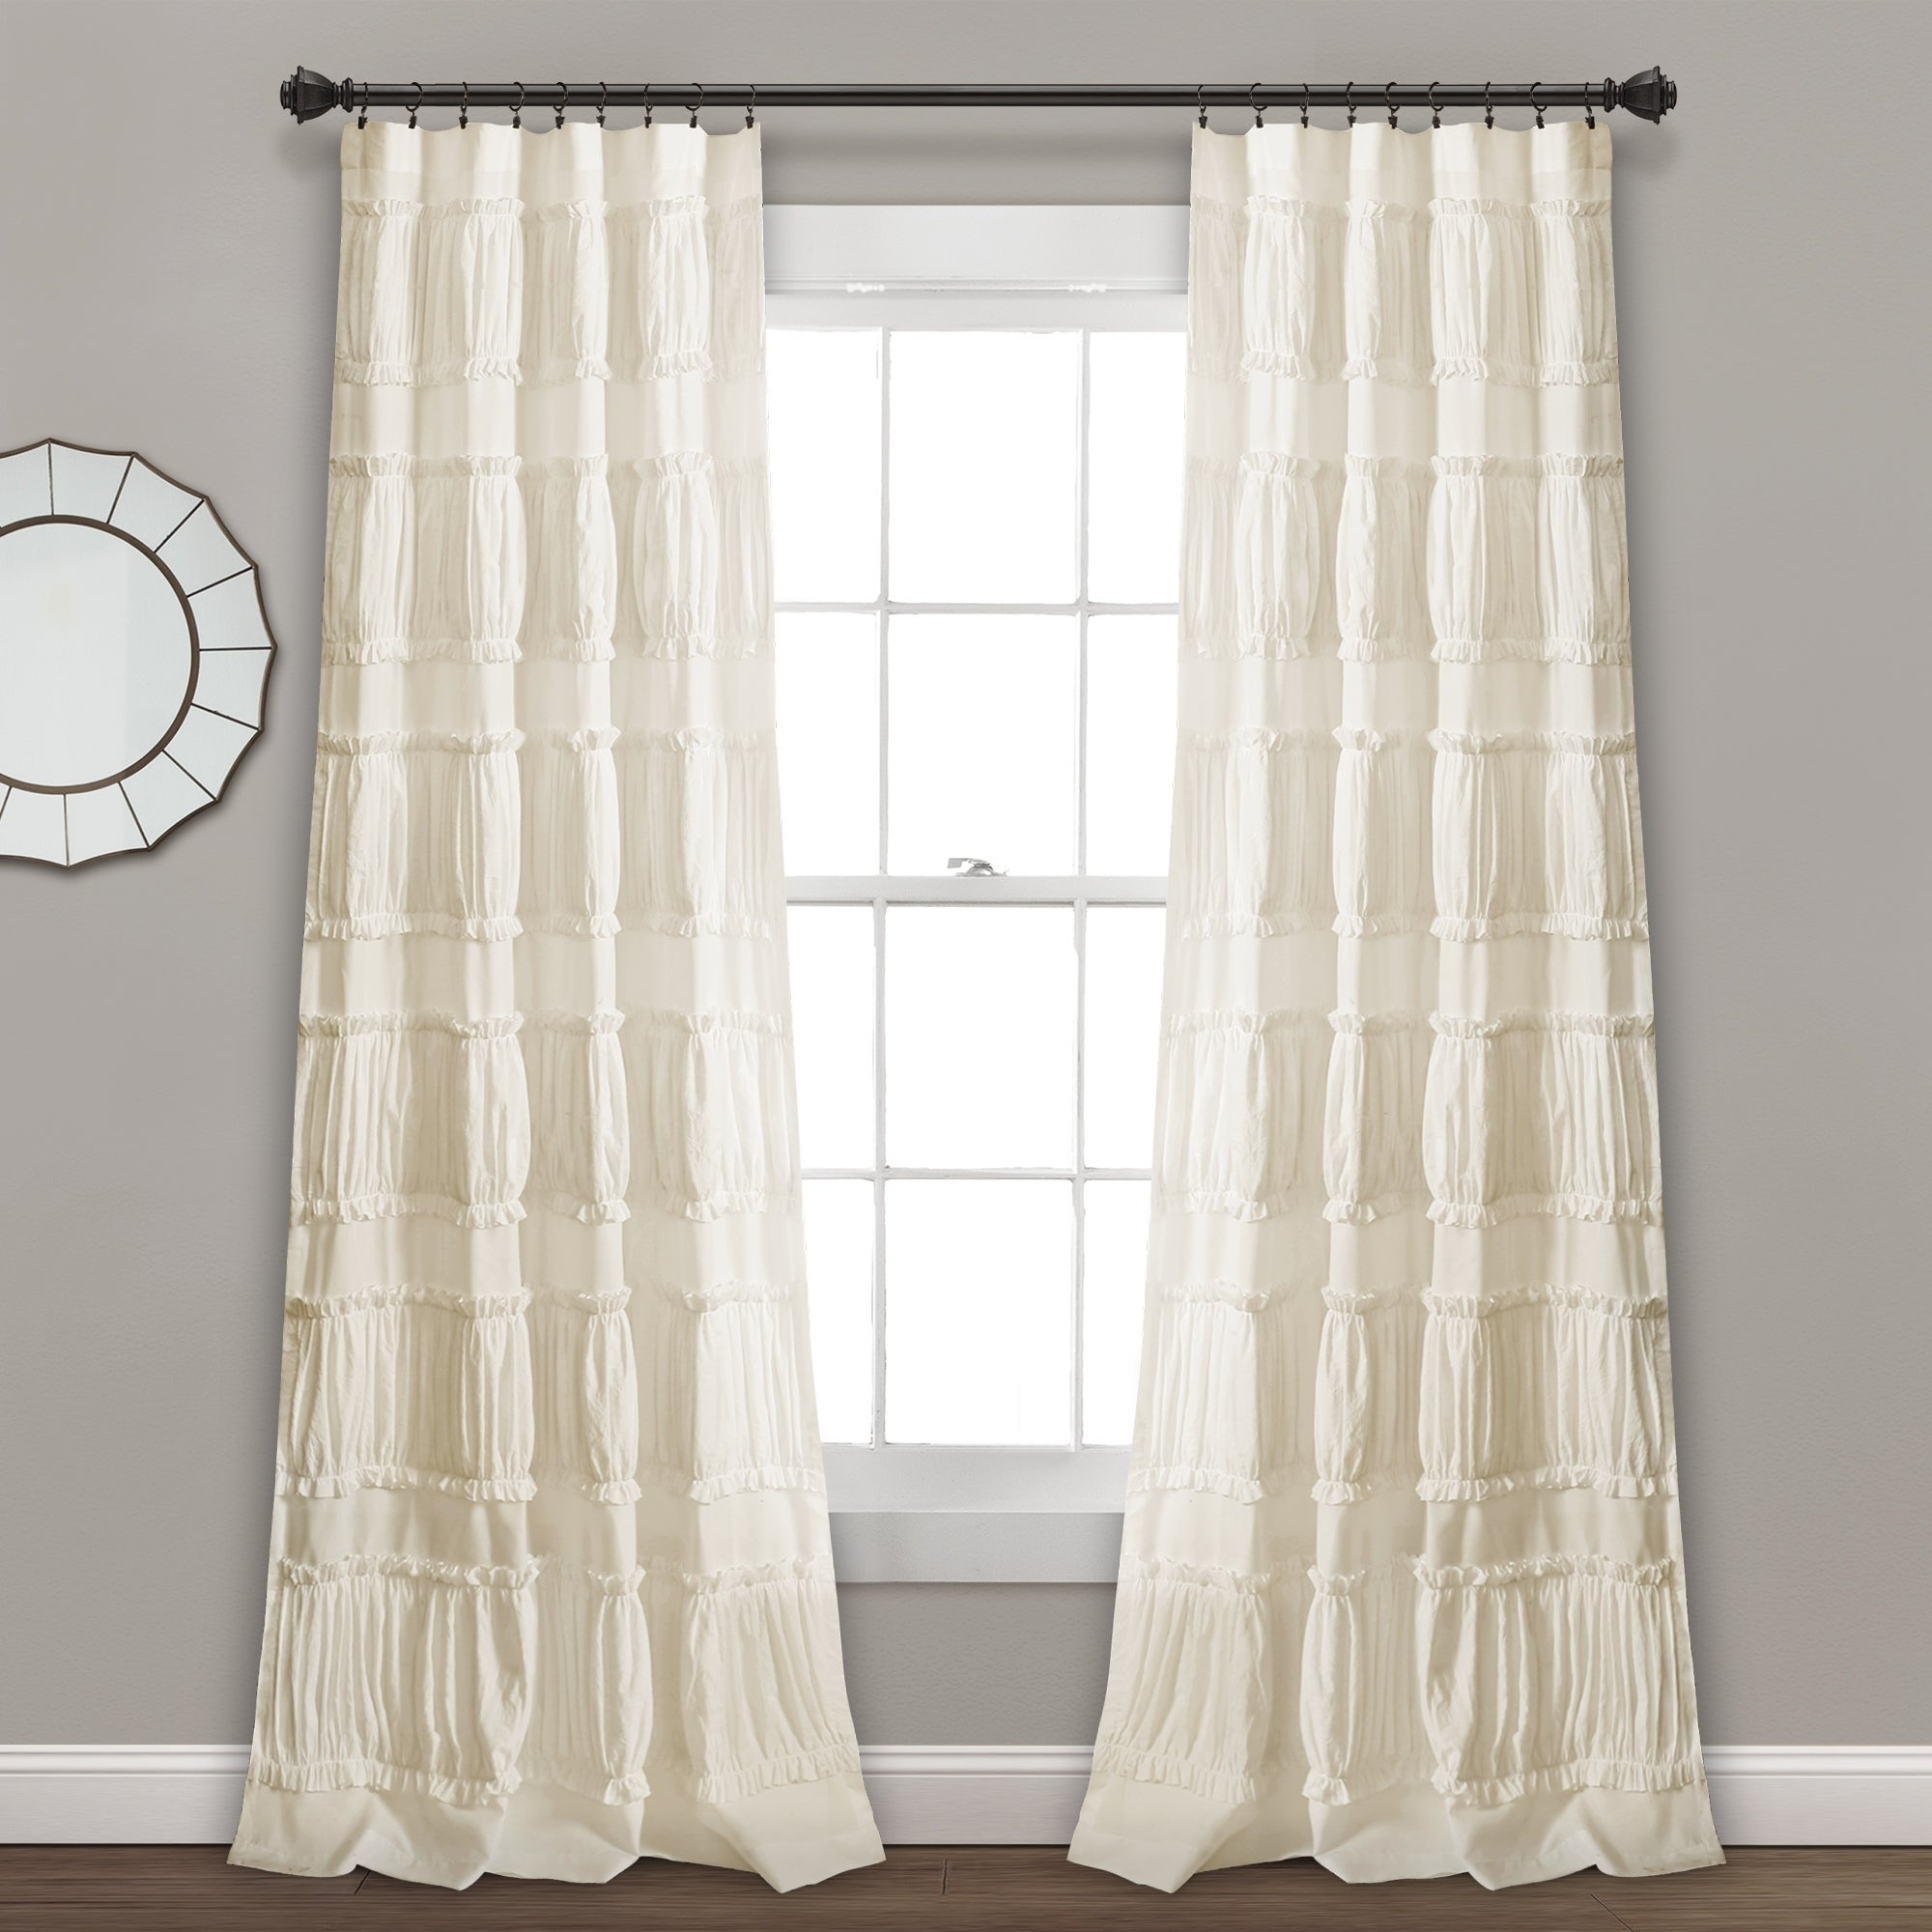 The Gray Barn Kind Koala Curtain Panel Pairs In Current Lush Decor Nova Ruffle Window Curtain Panel Pair (View 4 of 20)